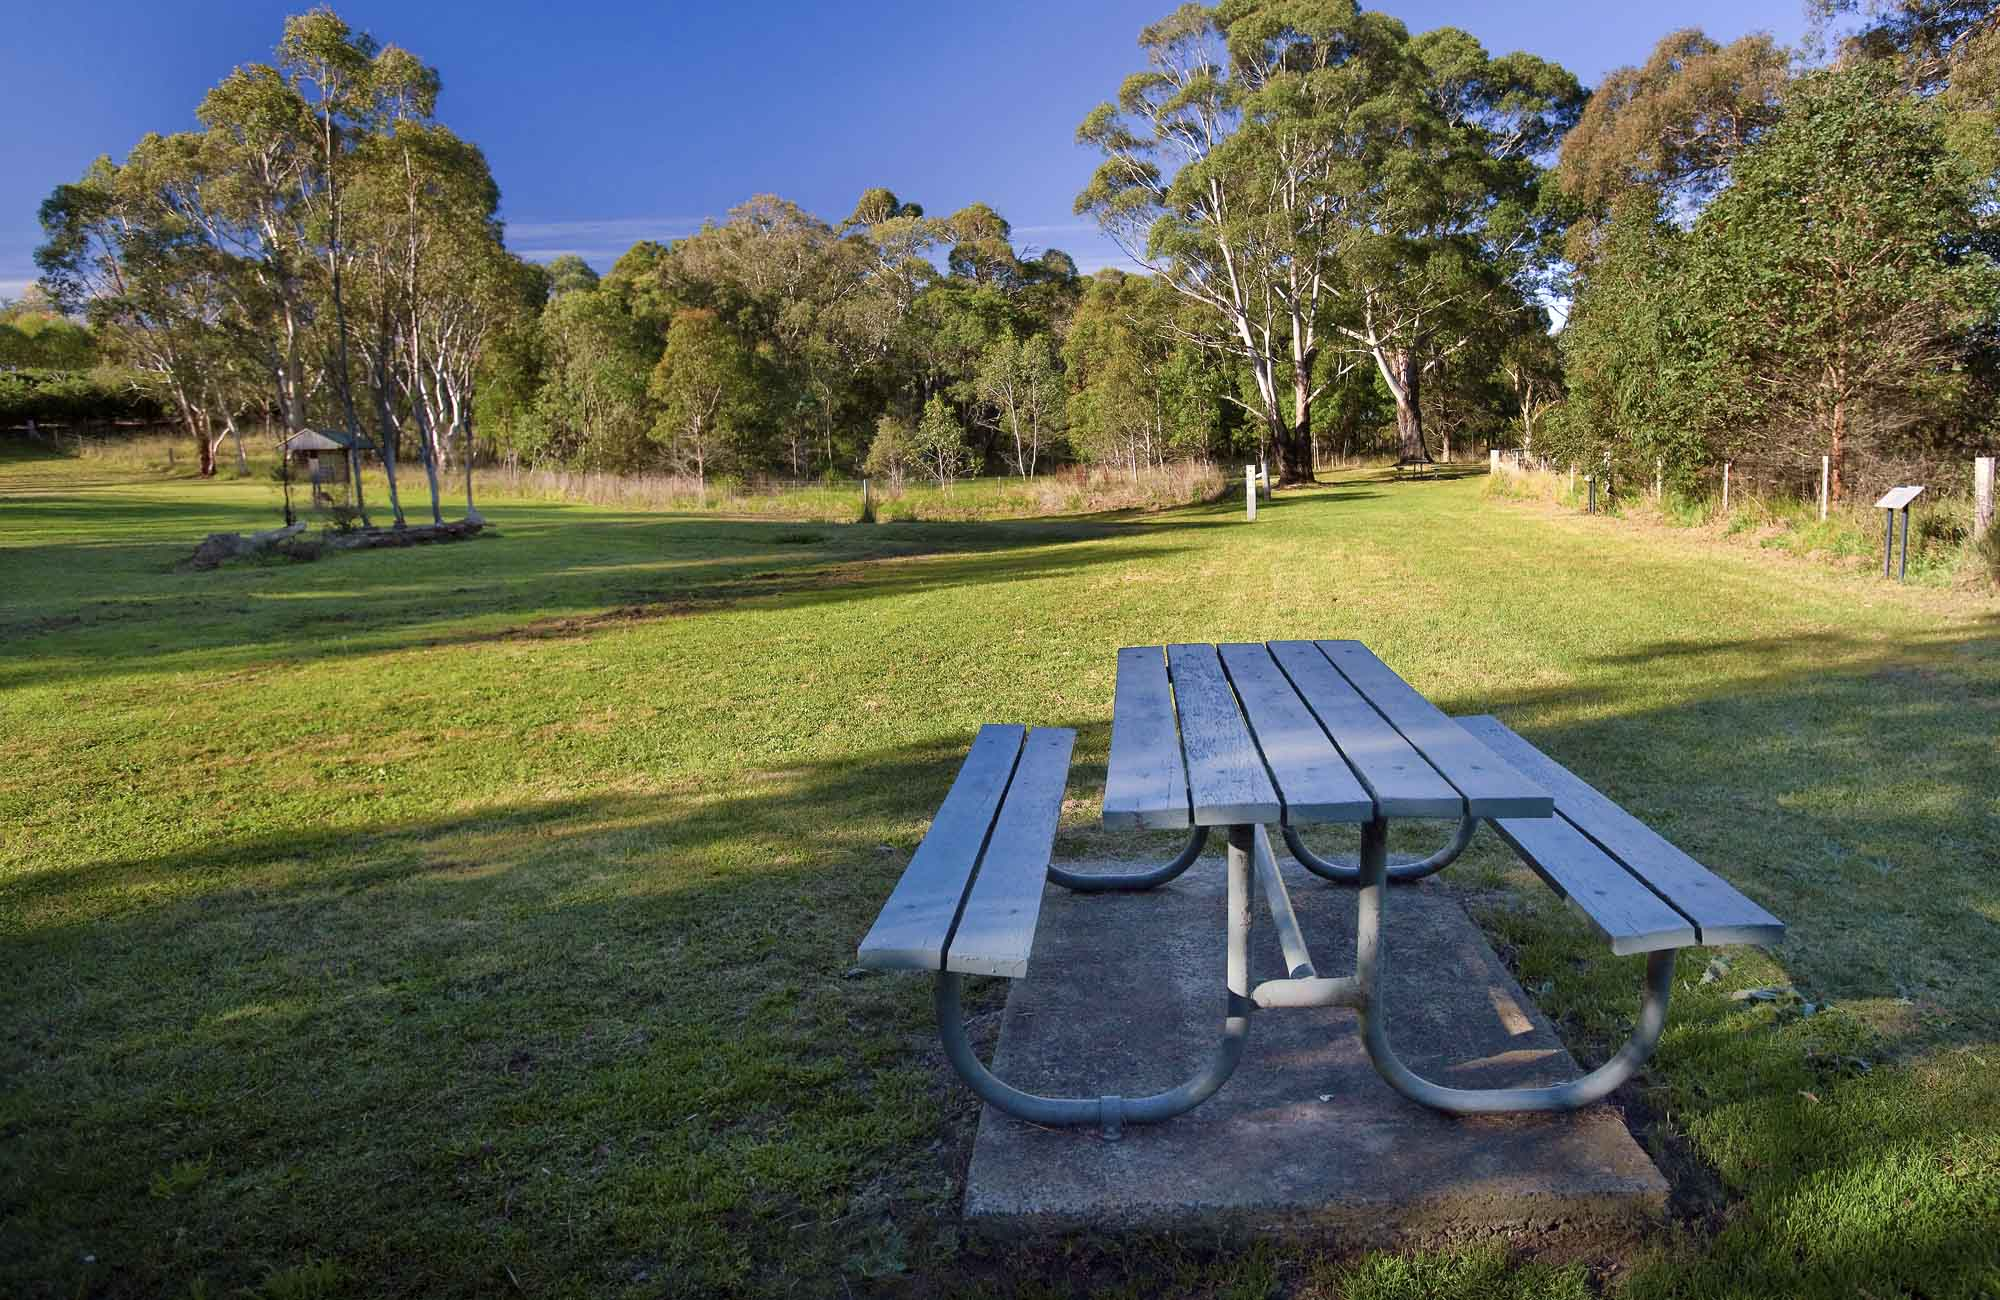 Cecil Hoskins picnic area, Cecil Hoskins Nature Reserve. Photo: Nick Cubbin